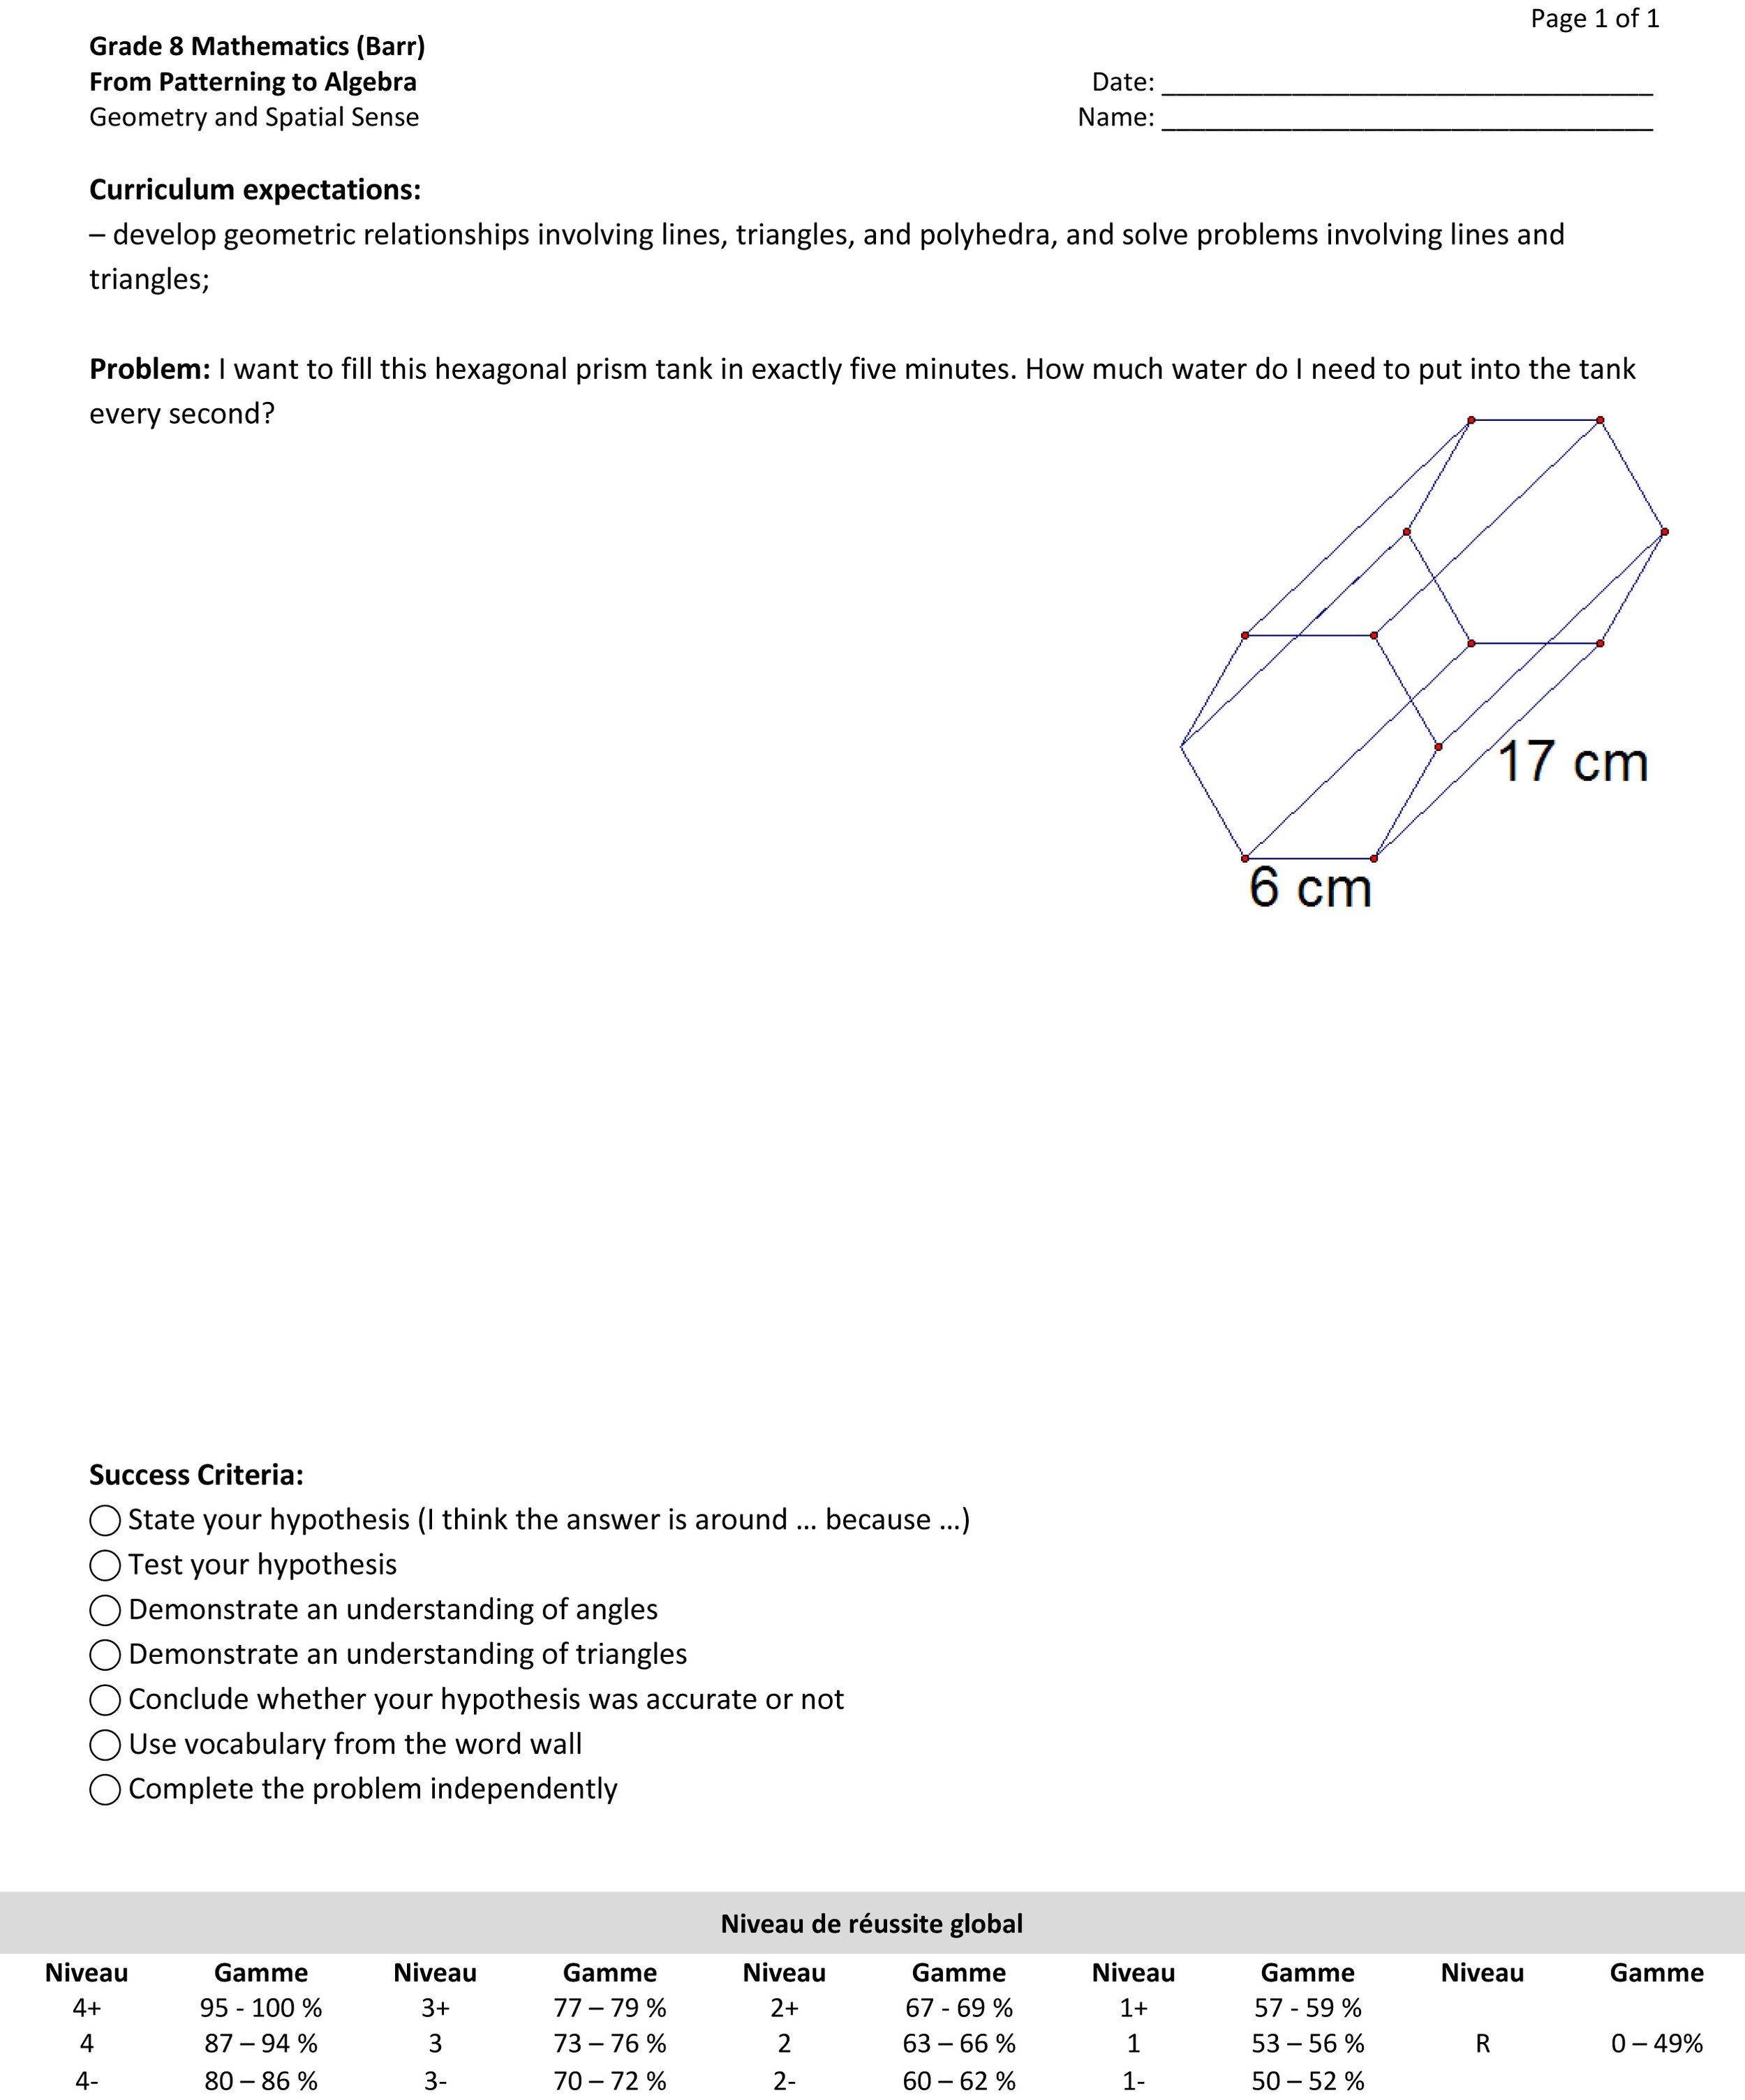 2016-05-10-from-patterning-to-algebra-gss-filling-hexagonal-prism.jpg